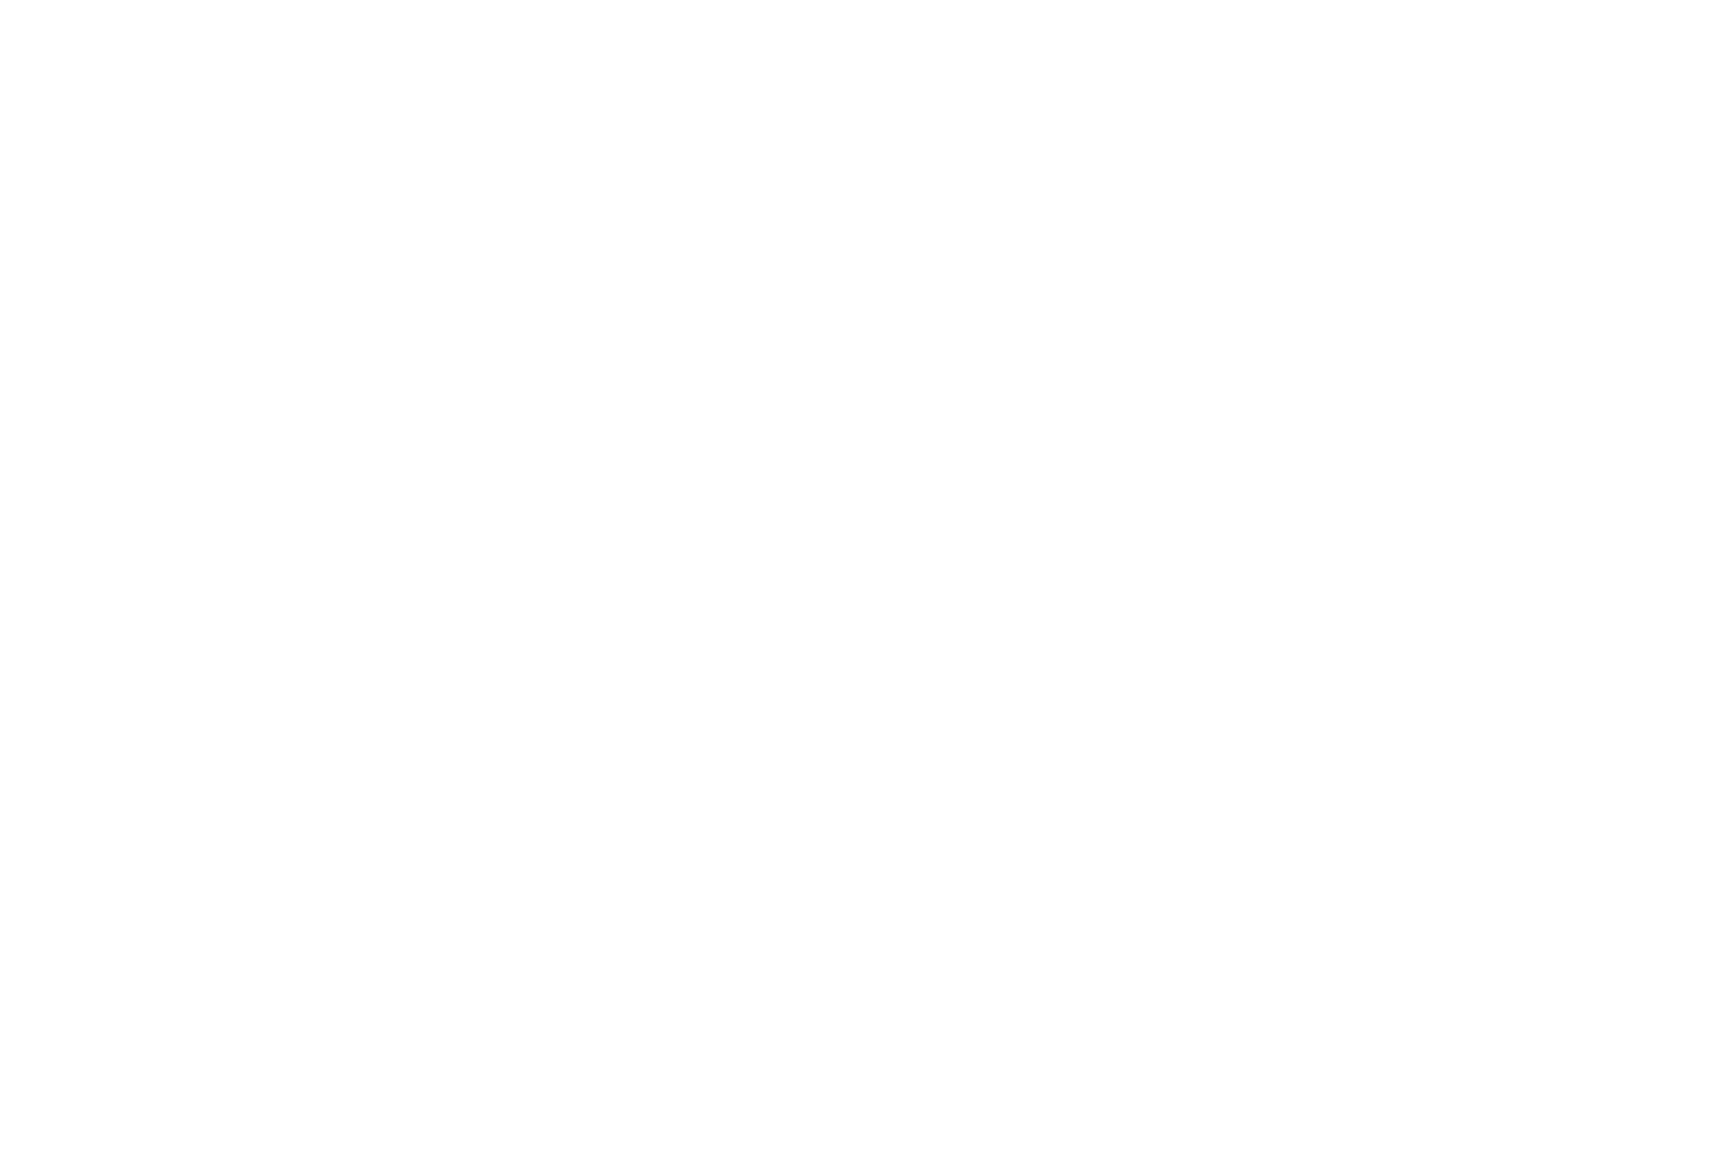 OFFICIAL SELECTION - Prairie Lights Film Festival - 2014.png